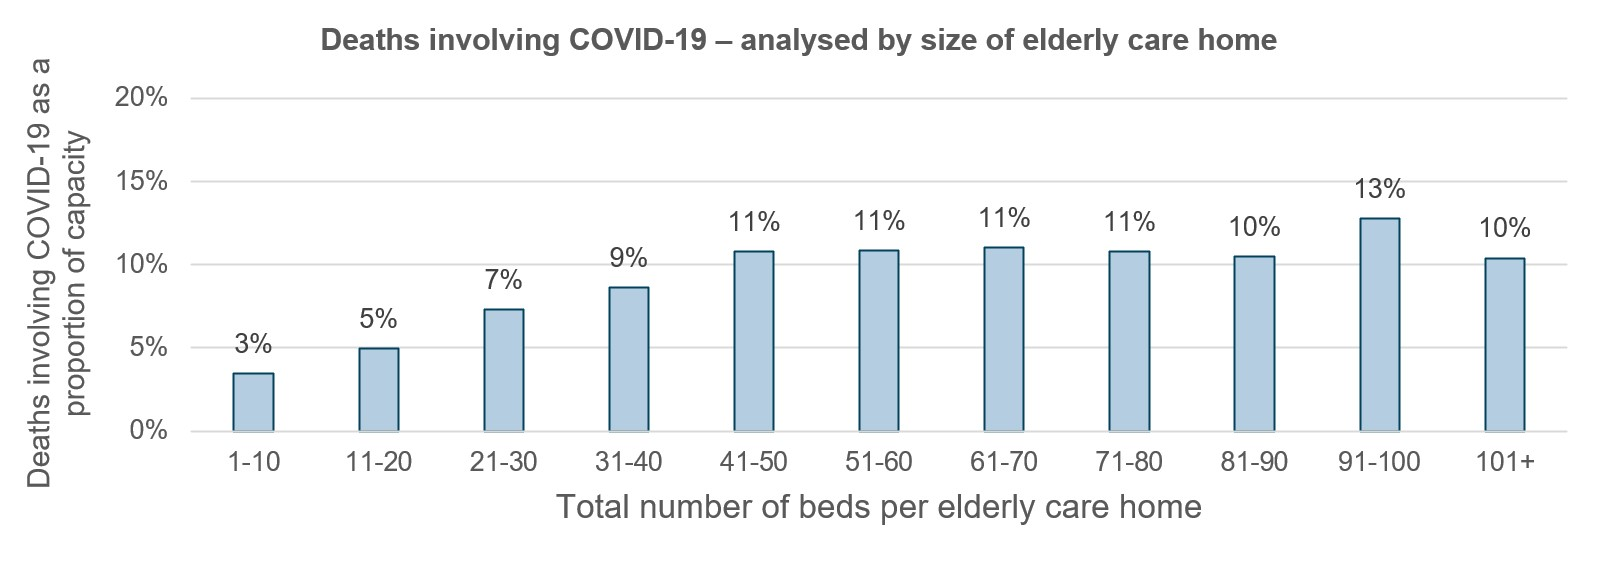 Deaths involving COVID-19 ¬¬¬¬¬¬¬¬– analysed by size of elderly care home